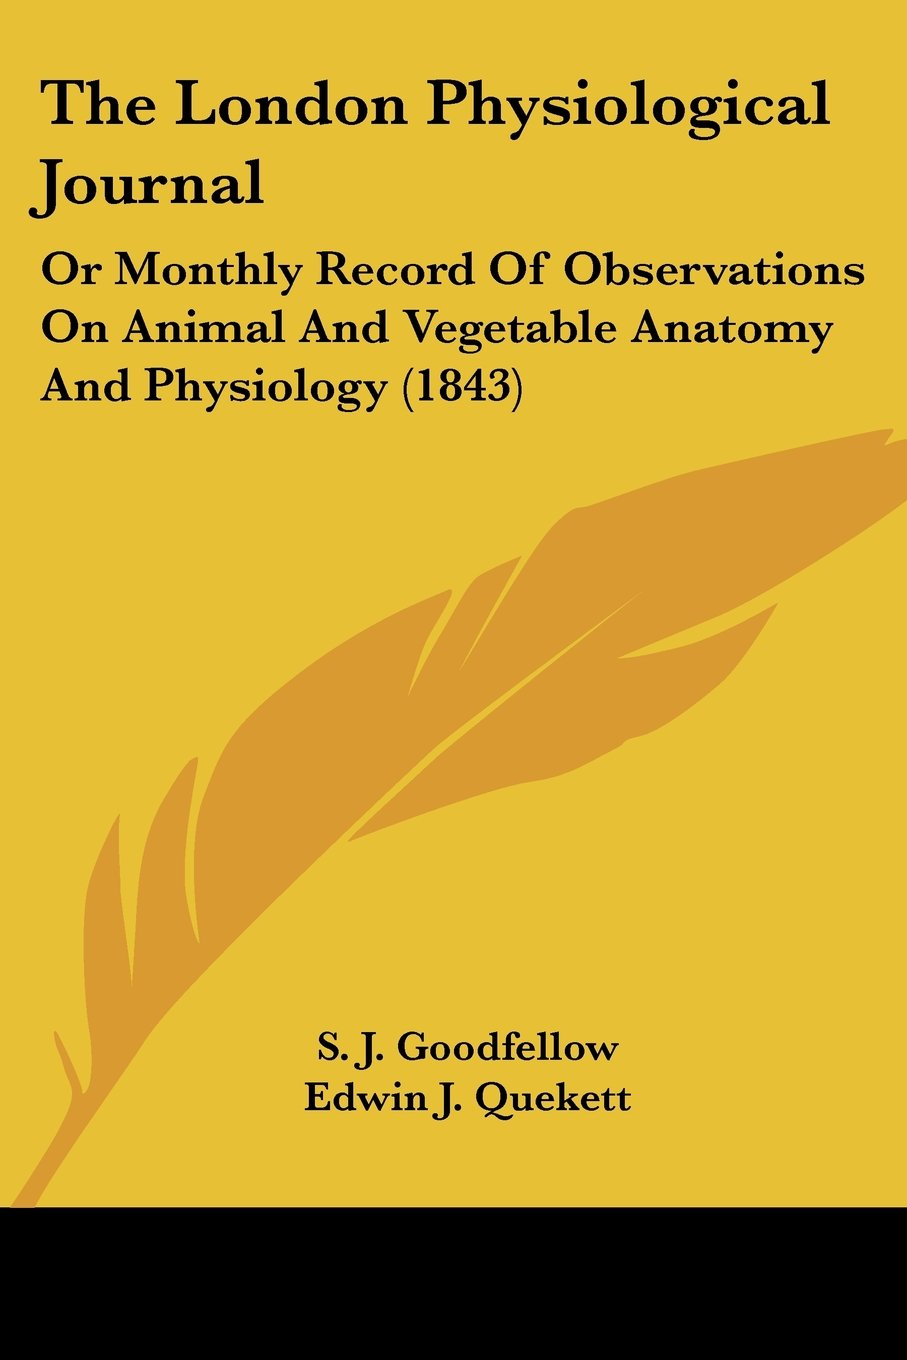 Download The London Physiological Journal: Or Monthly Record Of Observations On Animal And Vegetable Anatomy And Physiology (1843) pdf epub